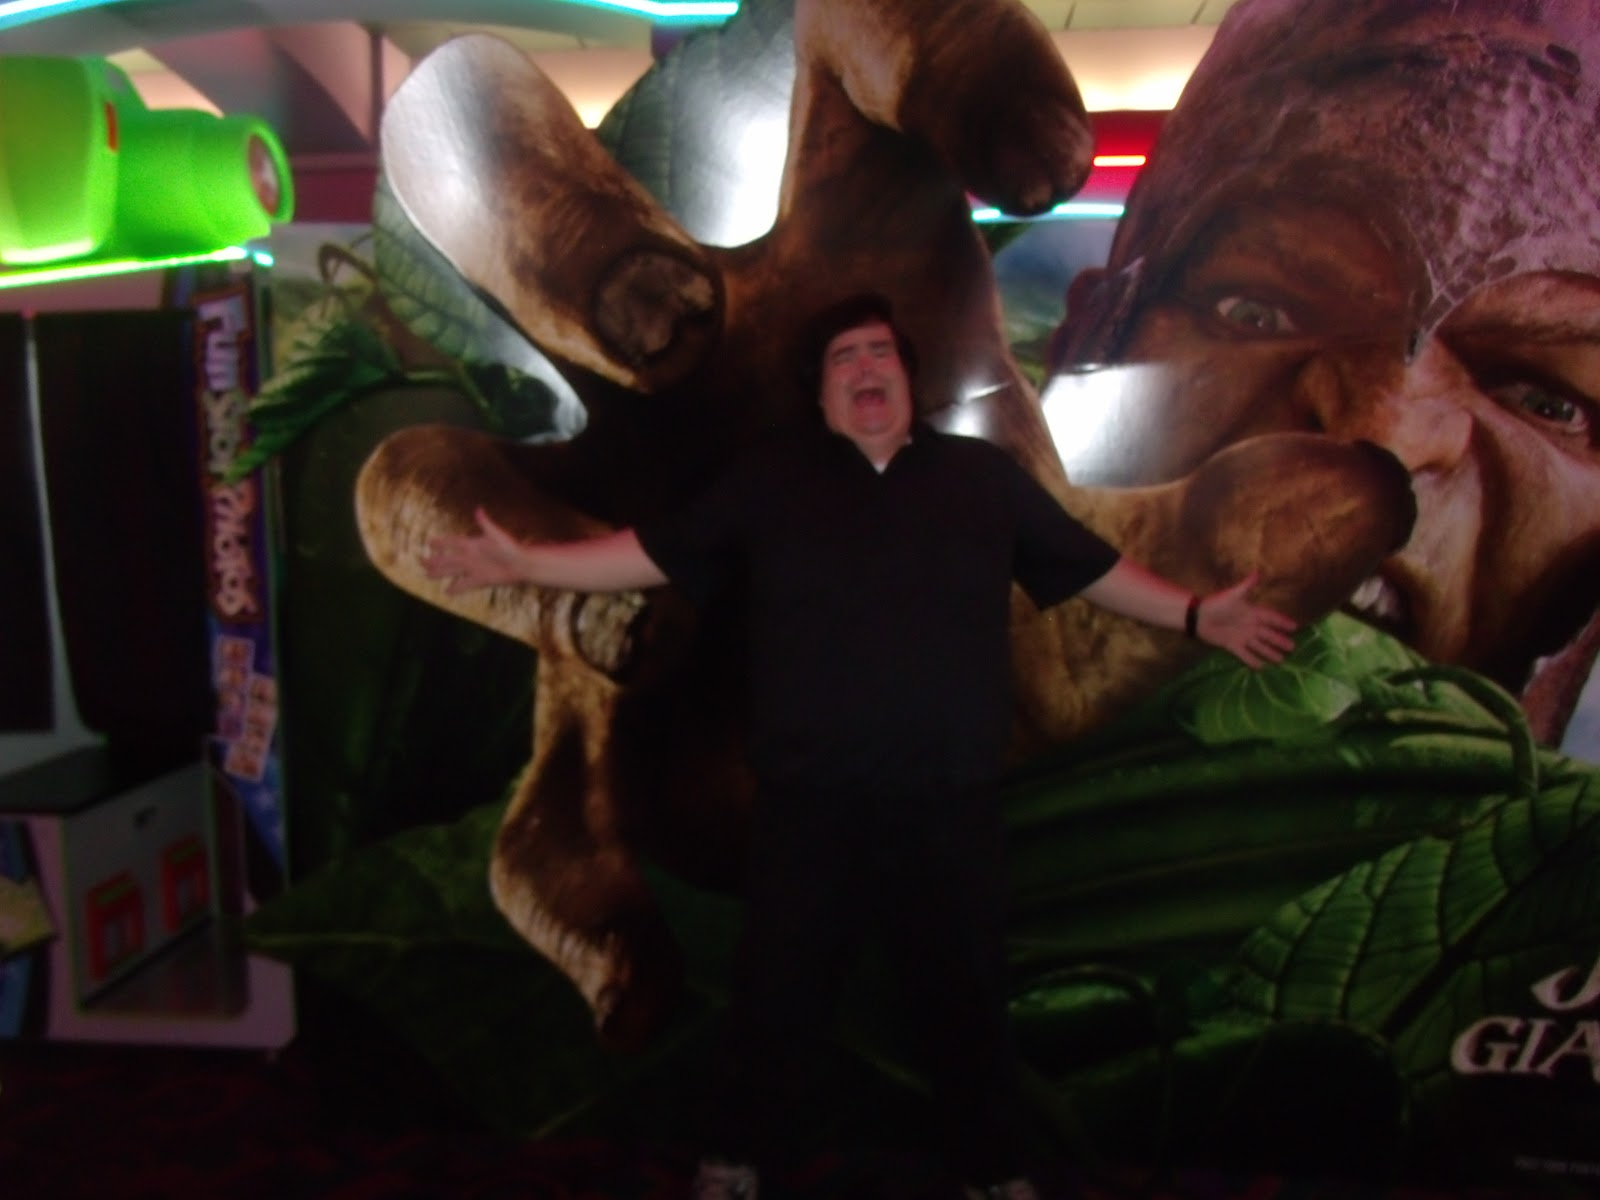 wrestling news center wnc 2012 christmas party at logan s here we are having fun in the lobby at the malco theater in southhaven ms thanks to ron at logan s roadhouse in tupelo ms the wnc staff appreciates all the